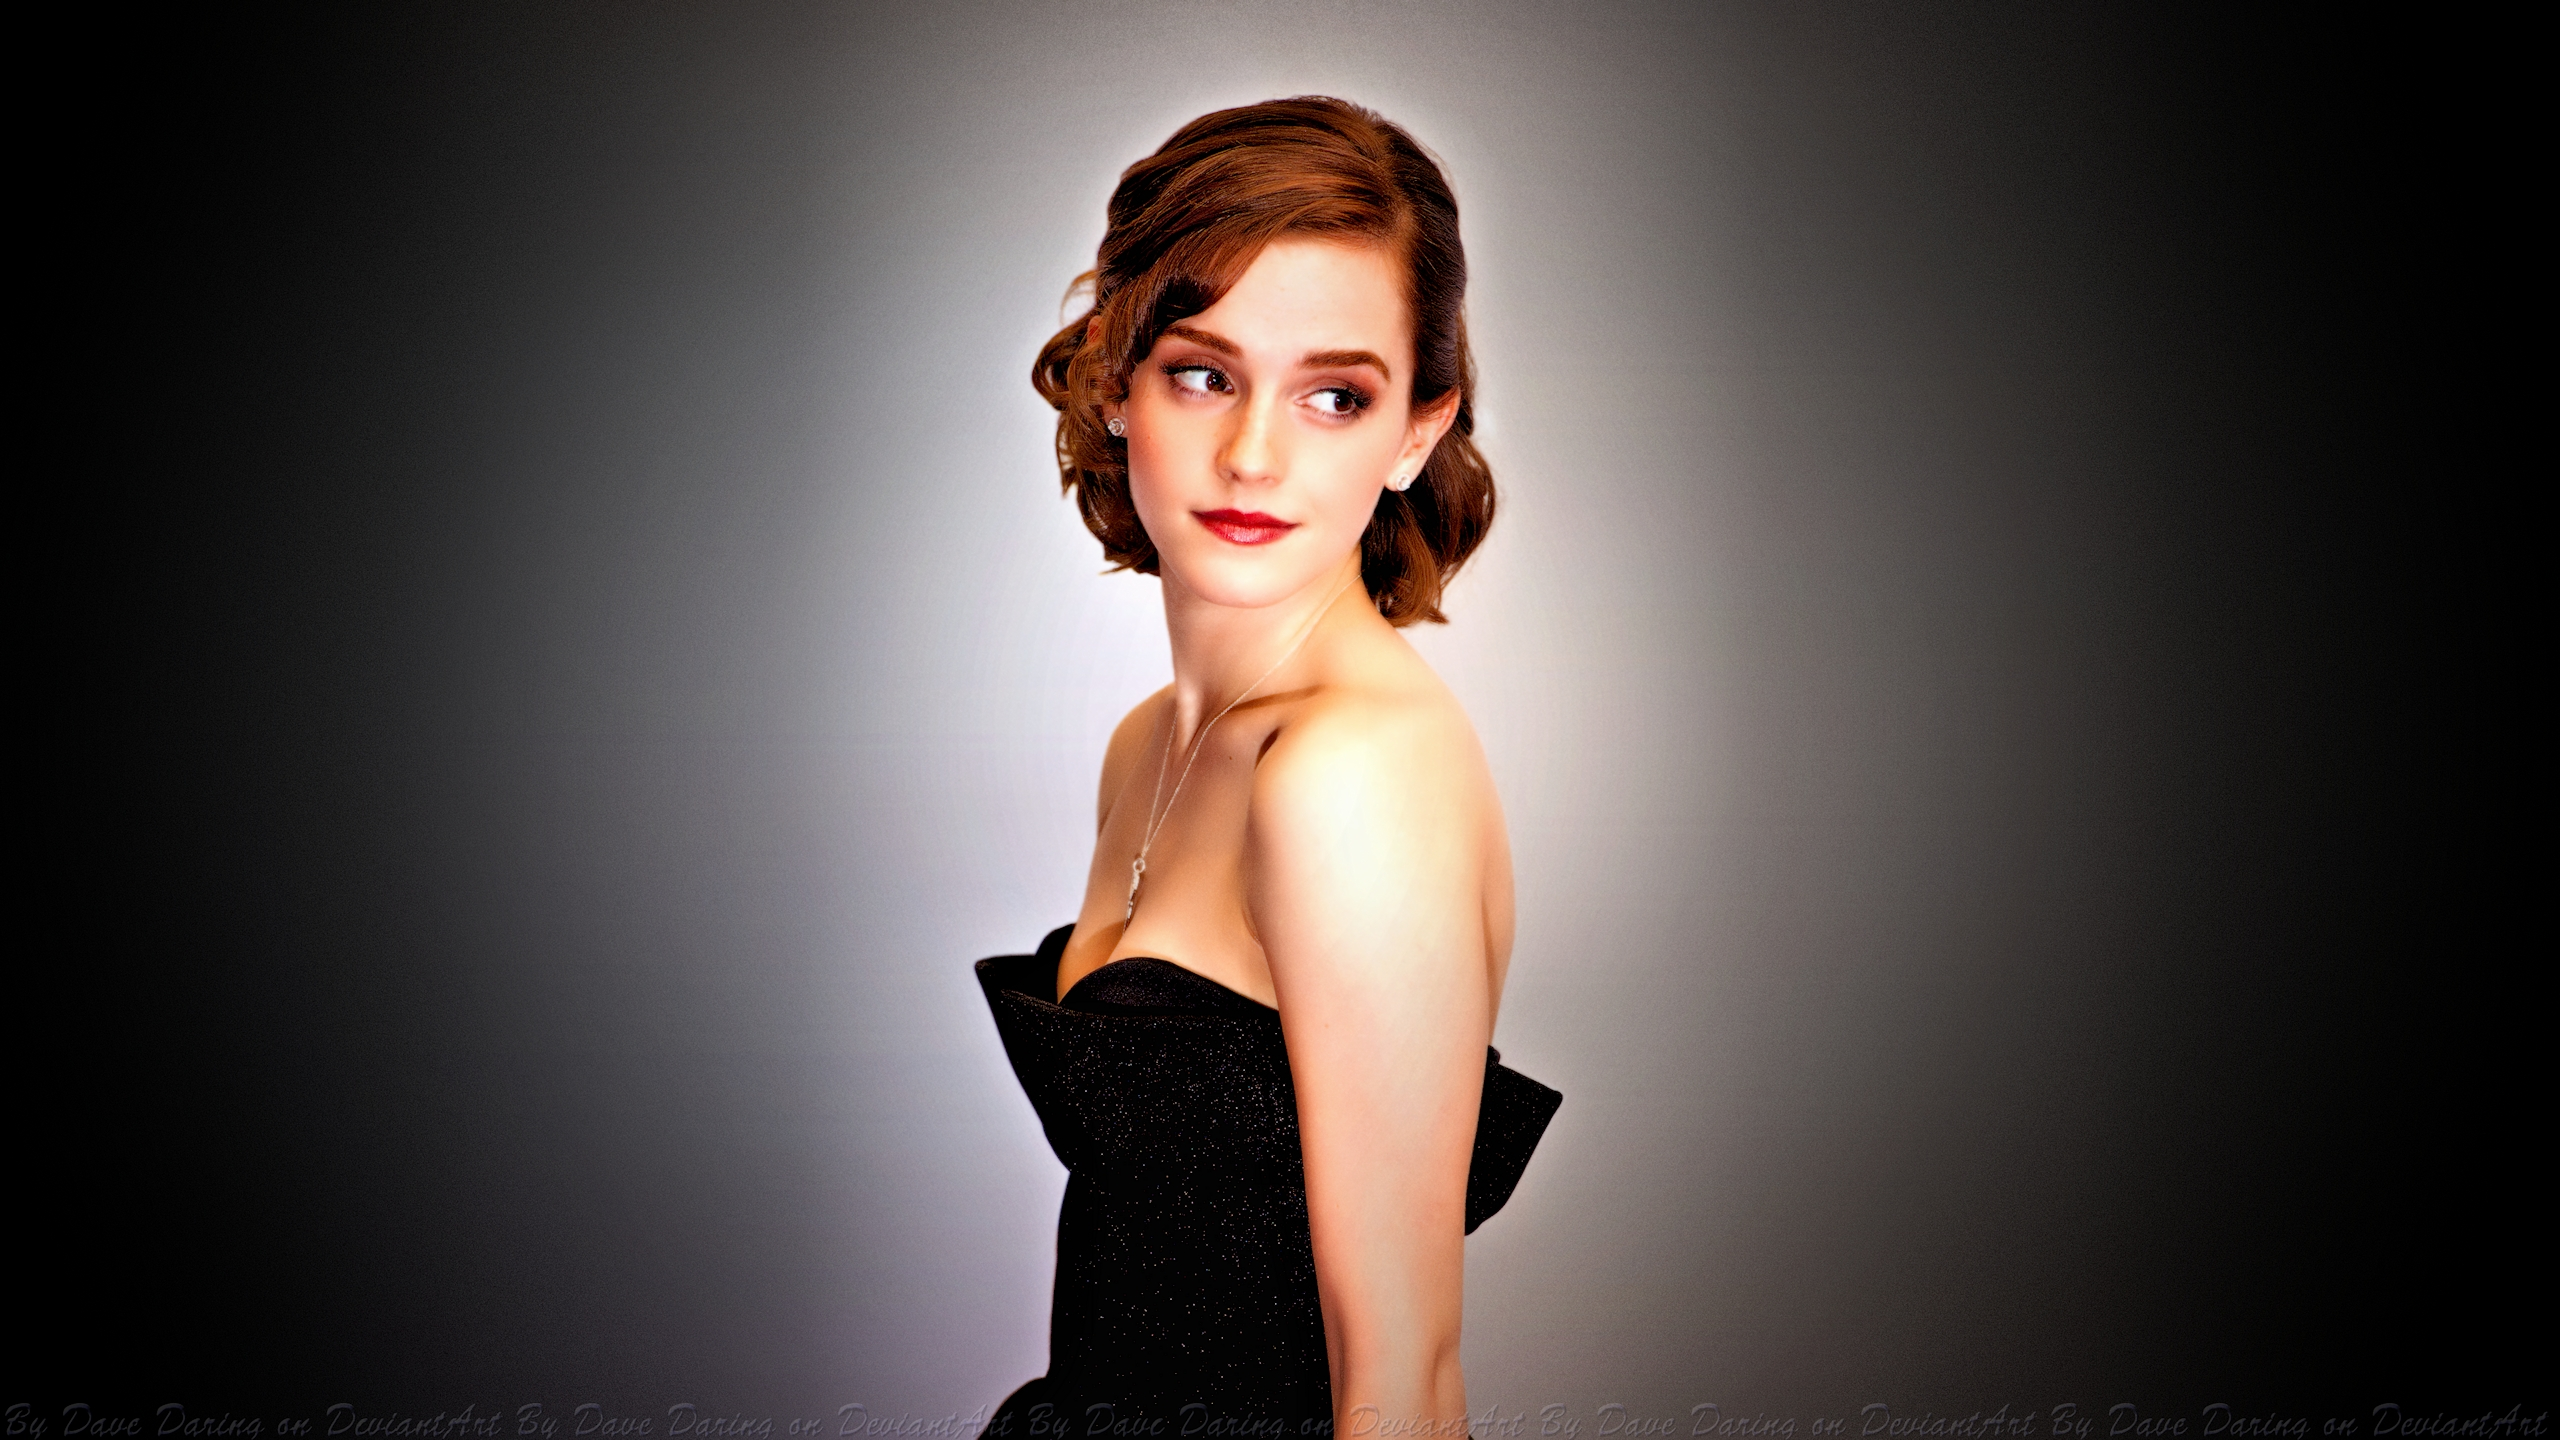 Emma Watson London Wallflower III by Dave-Daring